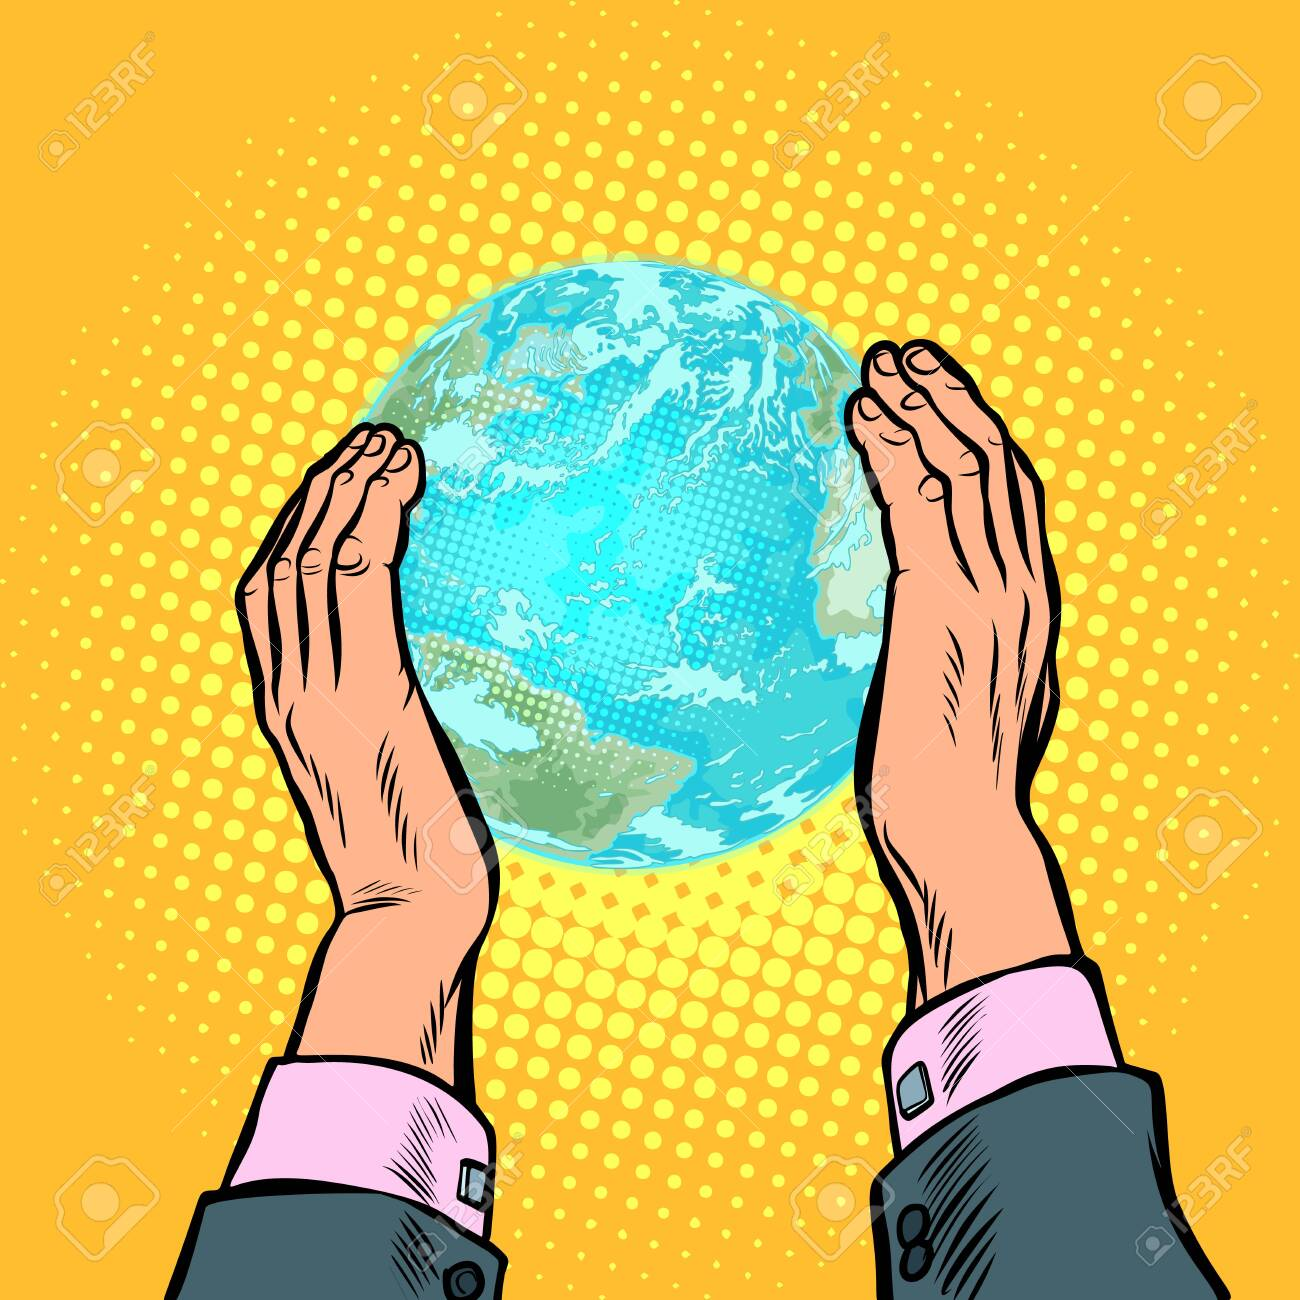 earth day ecology nature conservation planet humanity house. Pop art retro vector illustration vintage kitsch 50s 60s - 124011182